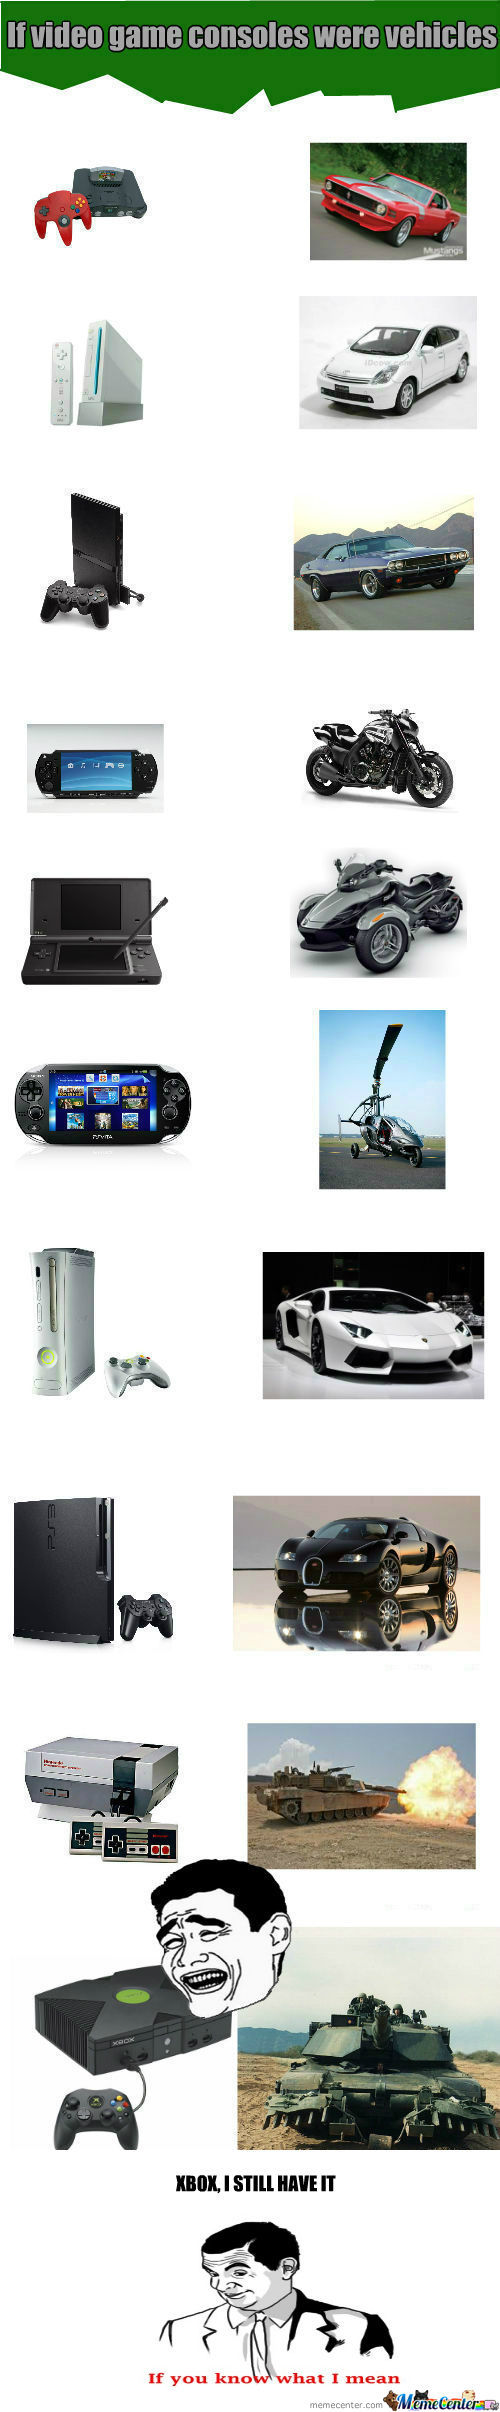 [RMX] [RMX] [RMX] If Game Consoles Were Vehicles